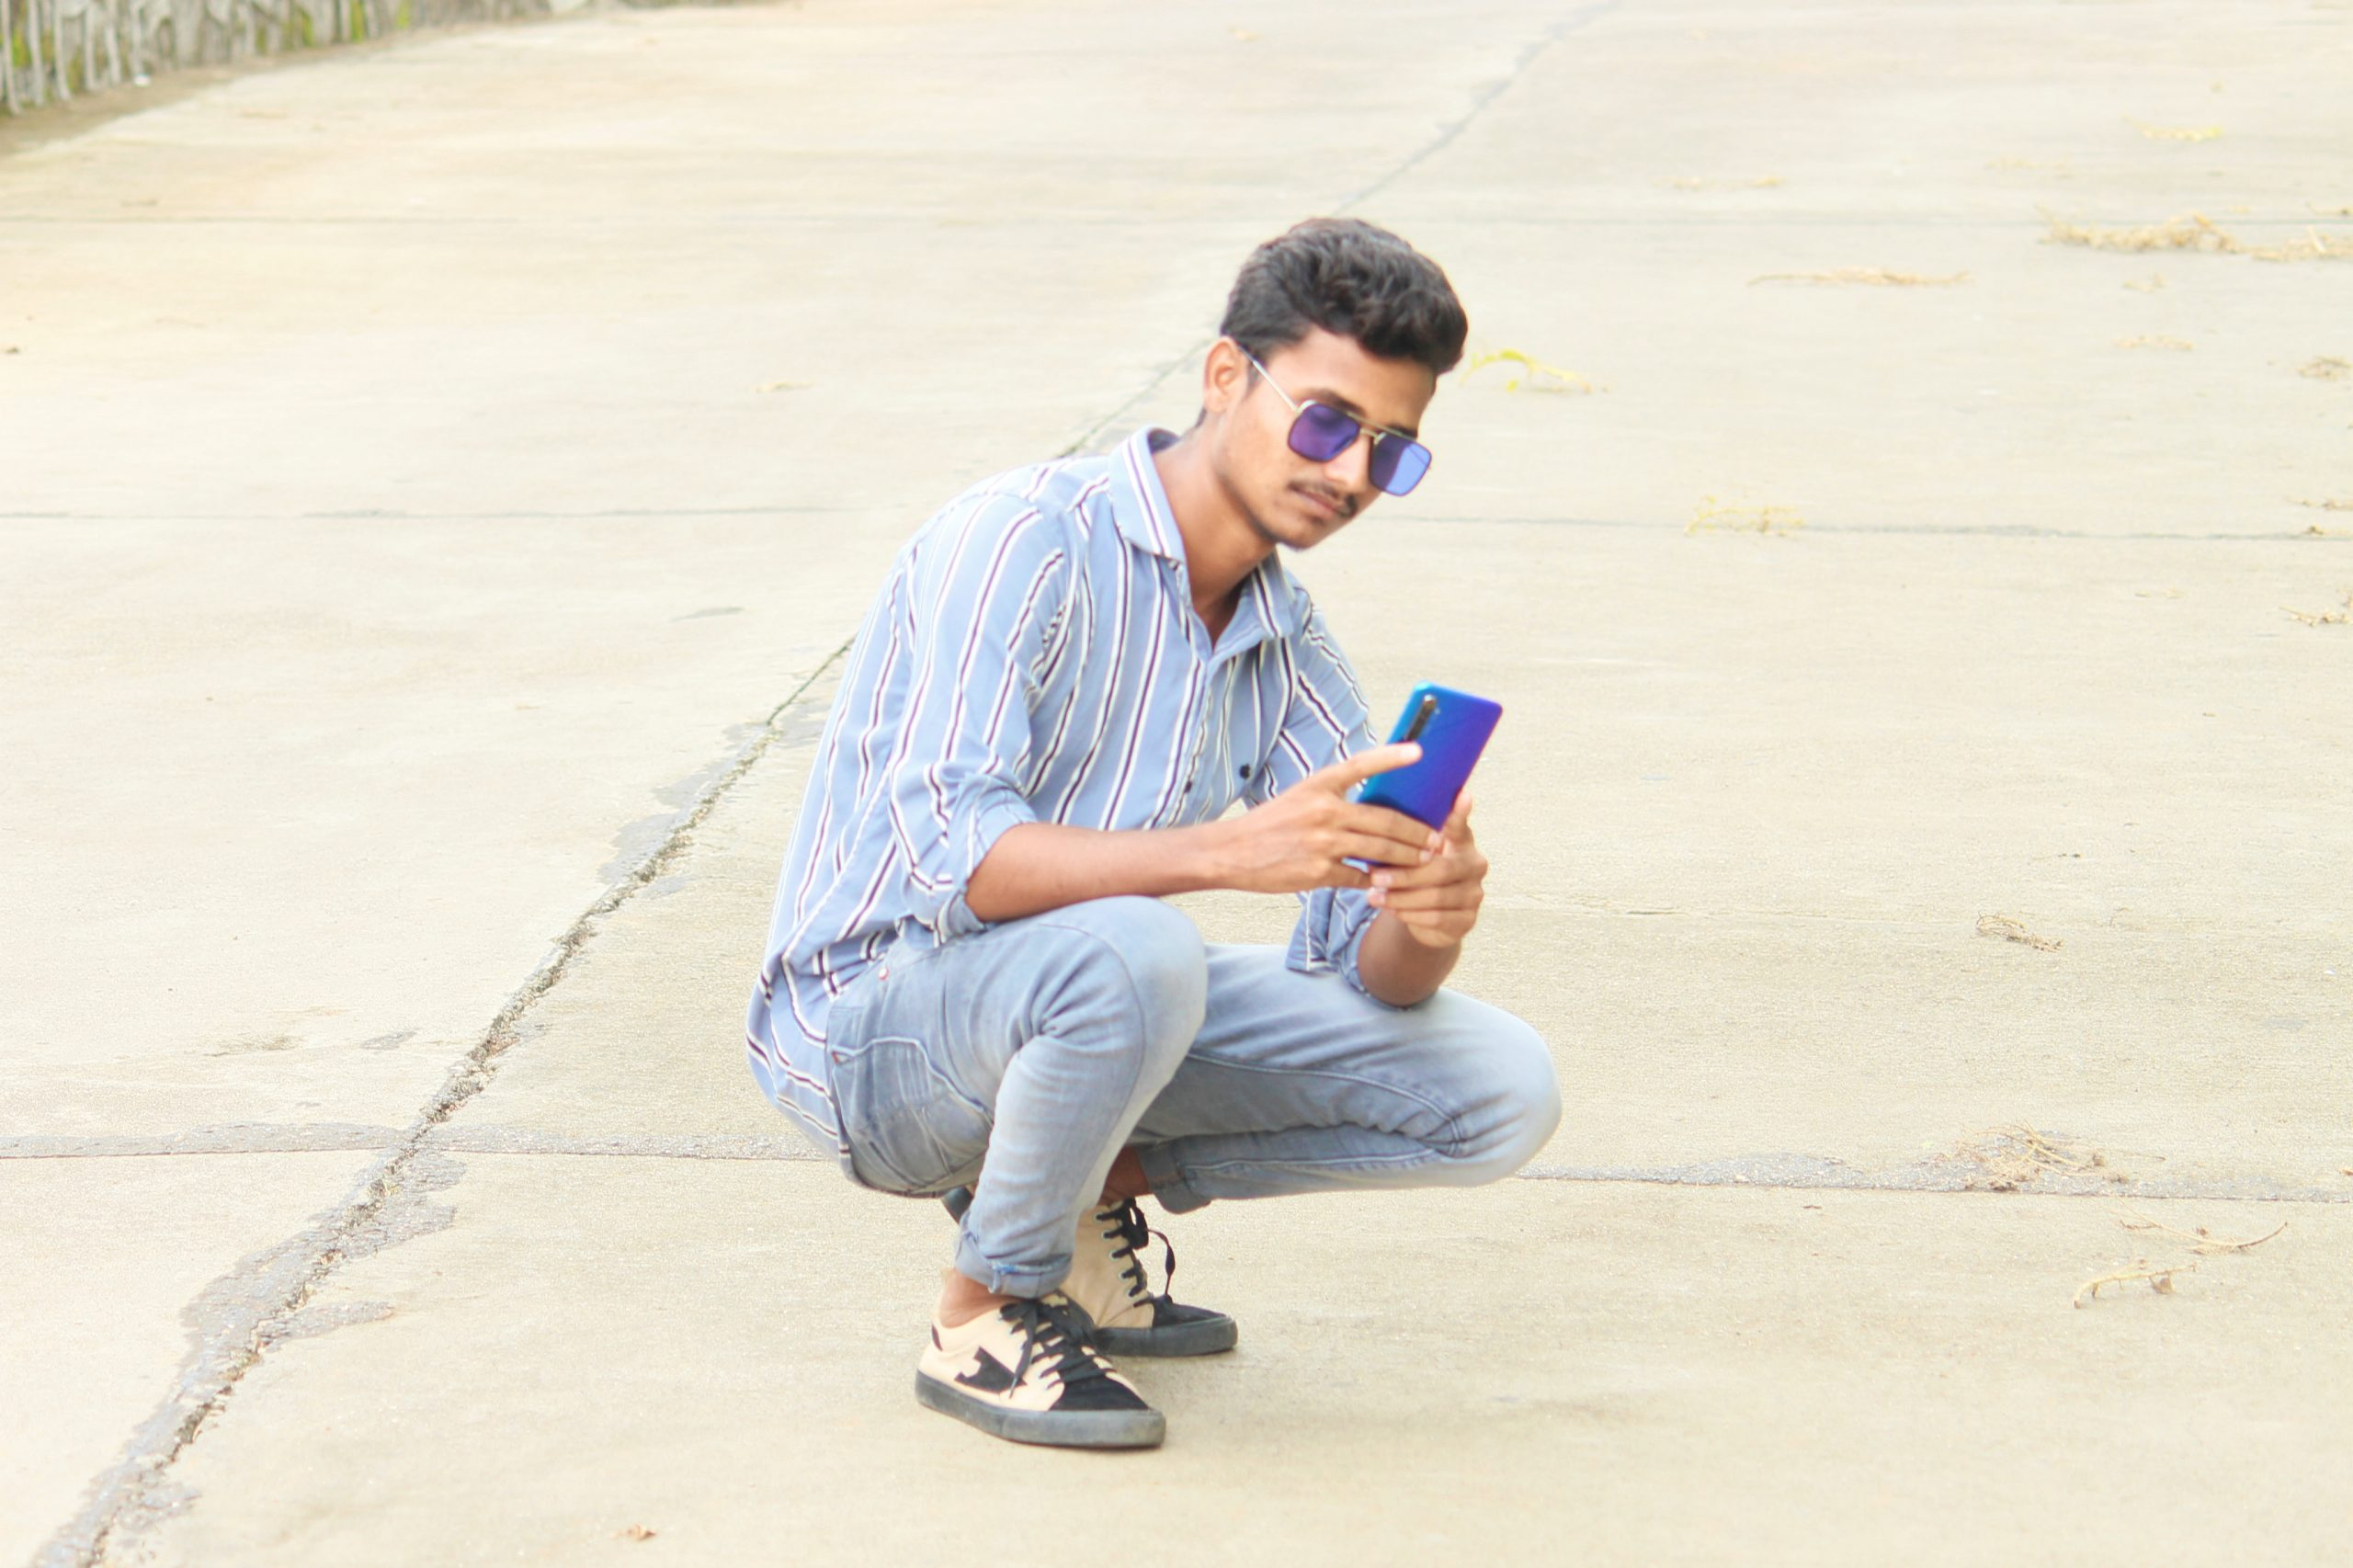 Male Model posing while mobile in his hand